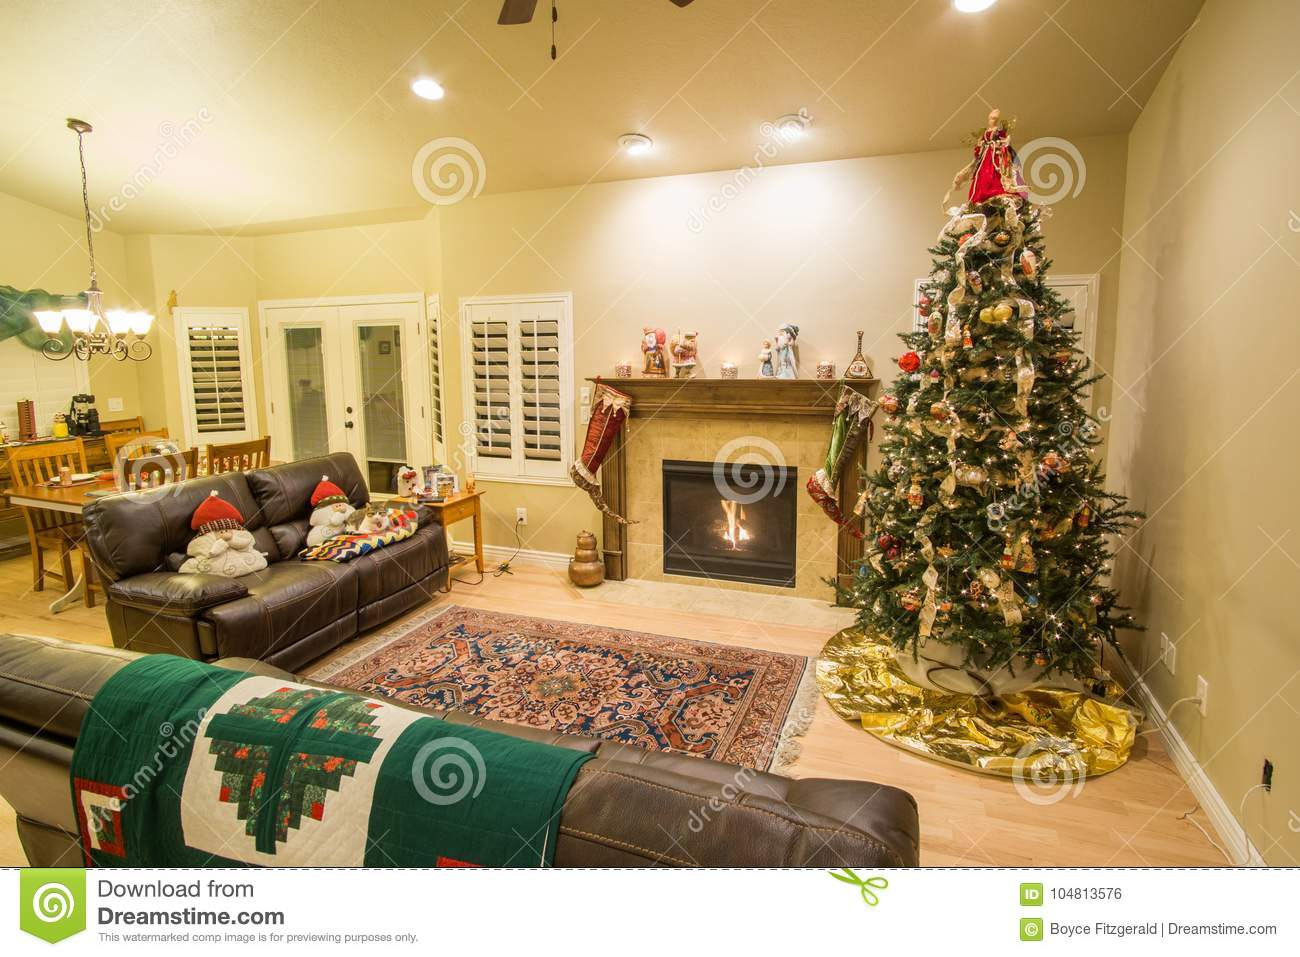 beautiful christmas tree and fireplace with cat relaxing on couch